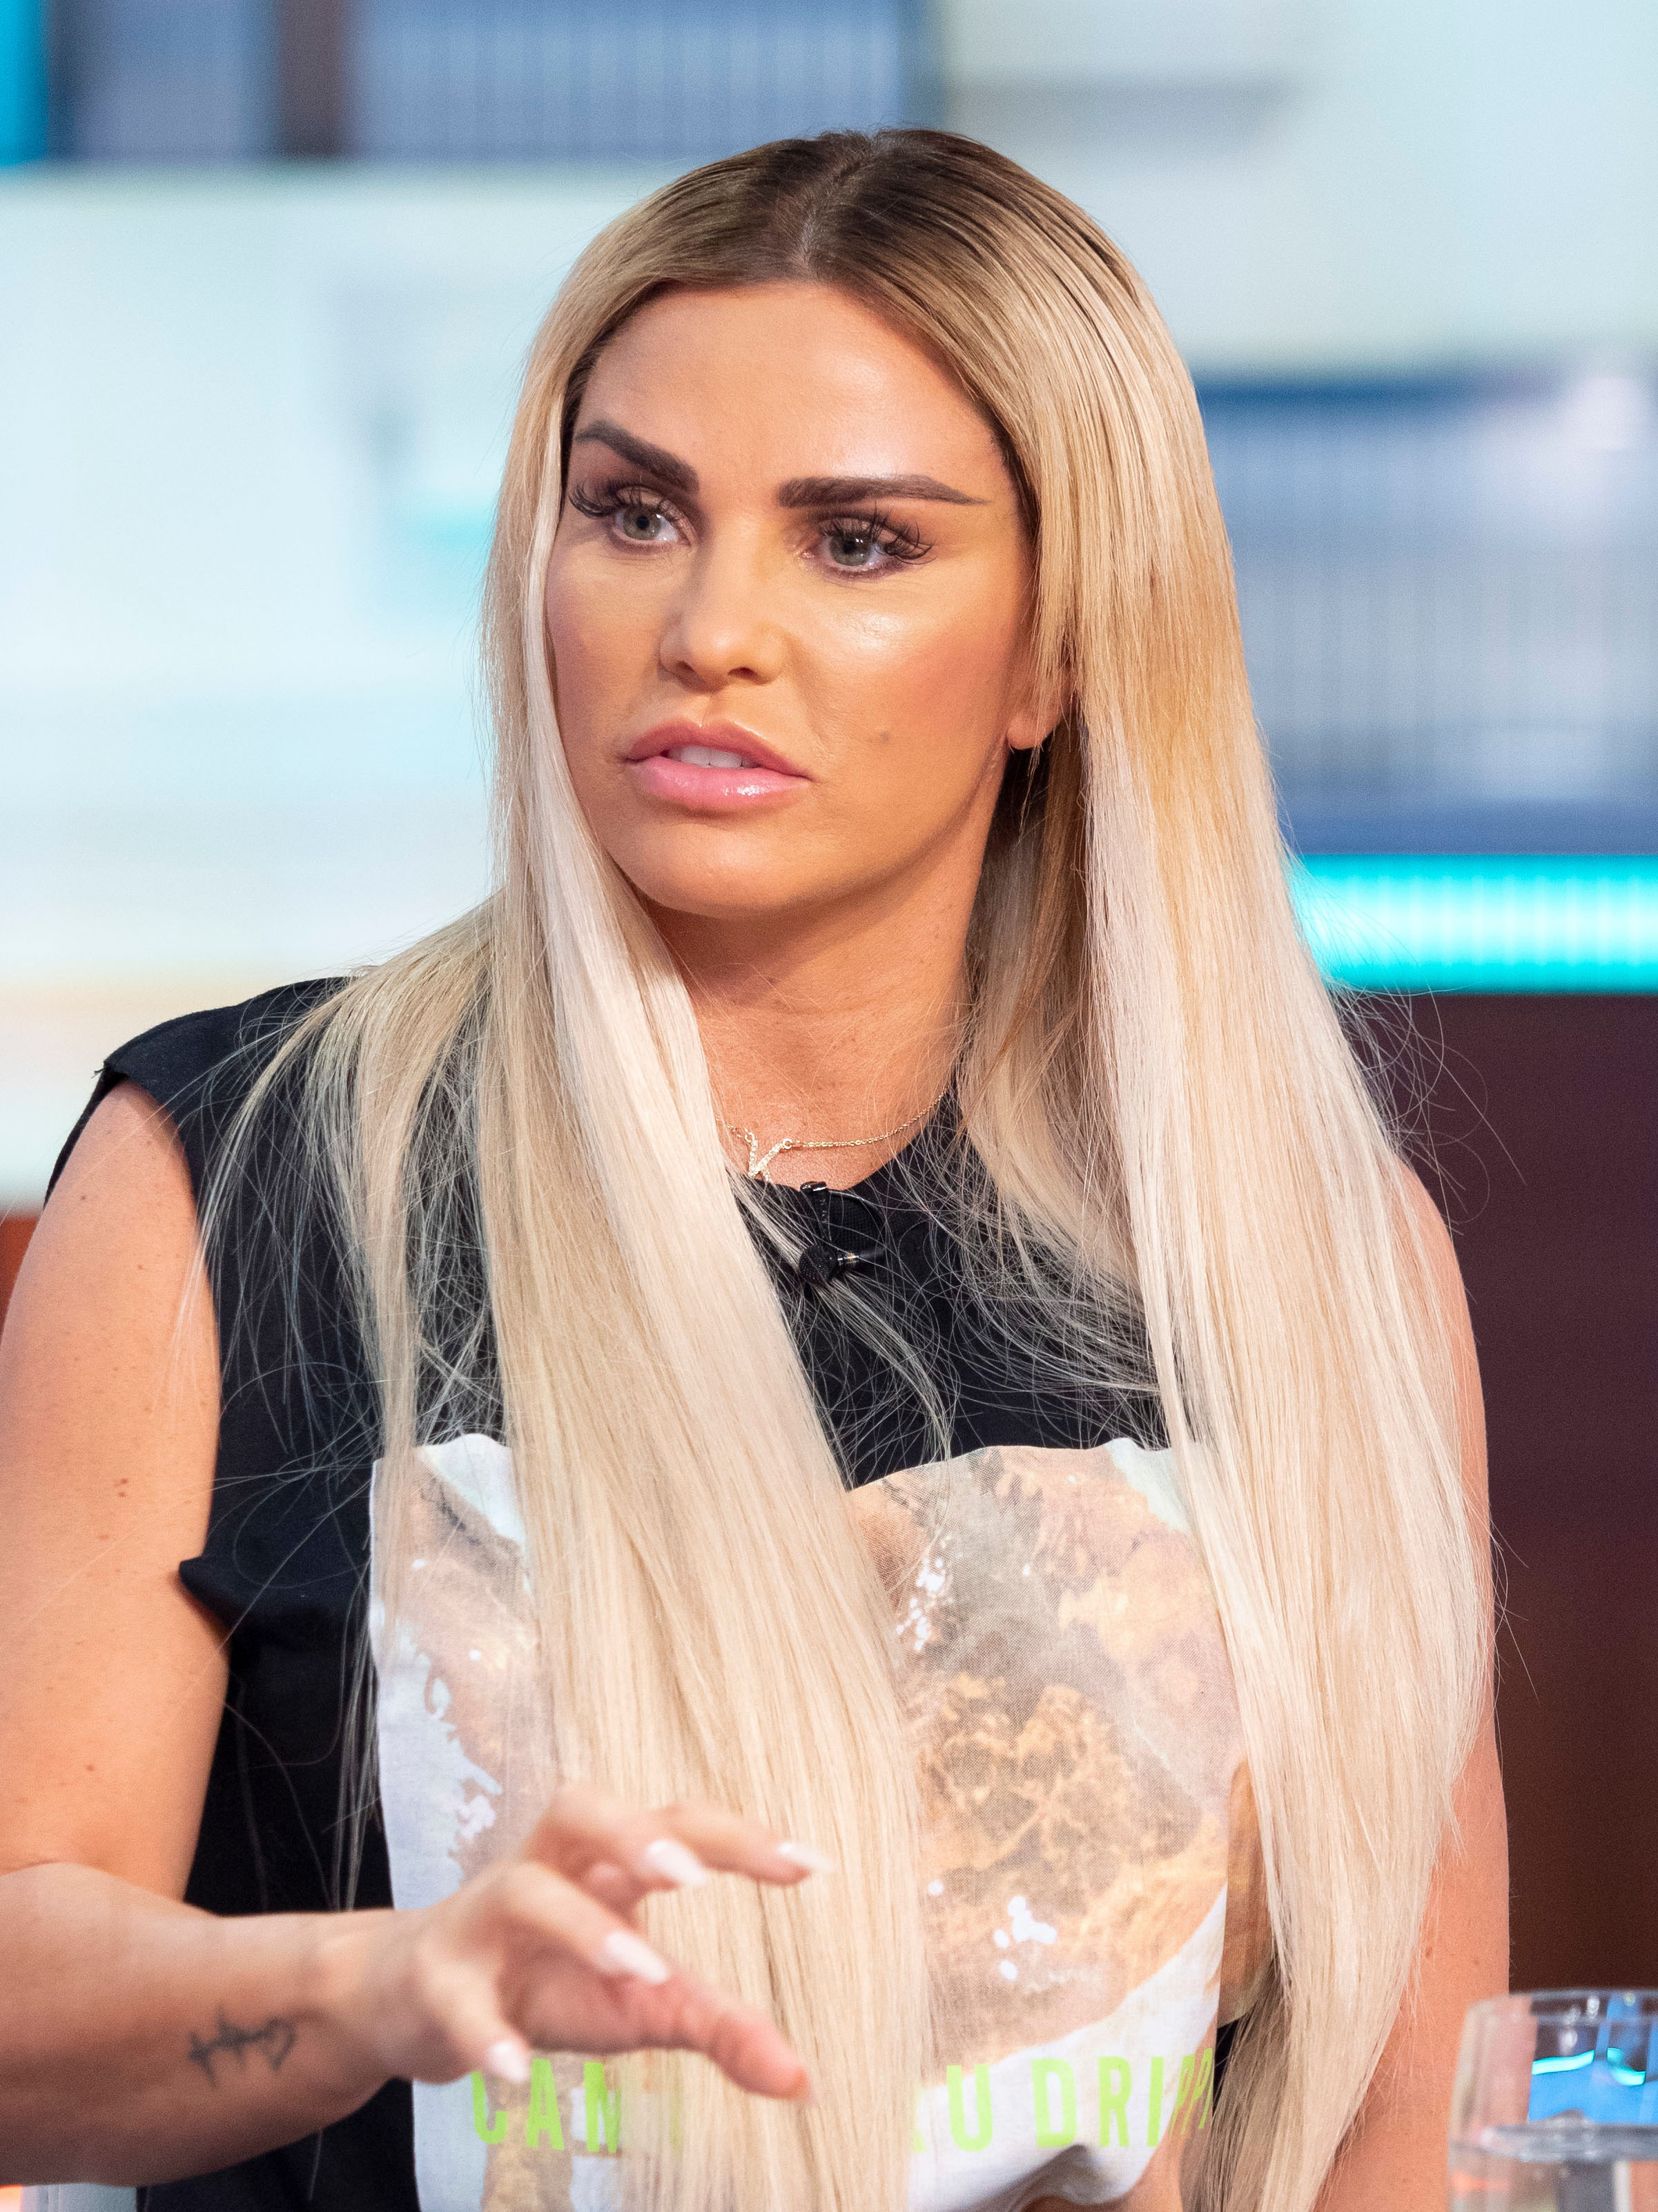 Katie Price's 'wonky' hairstyle slammed by trolls after she debuts dramatic long blonde 'do